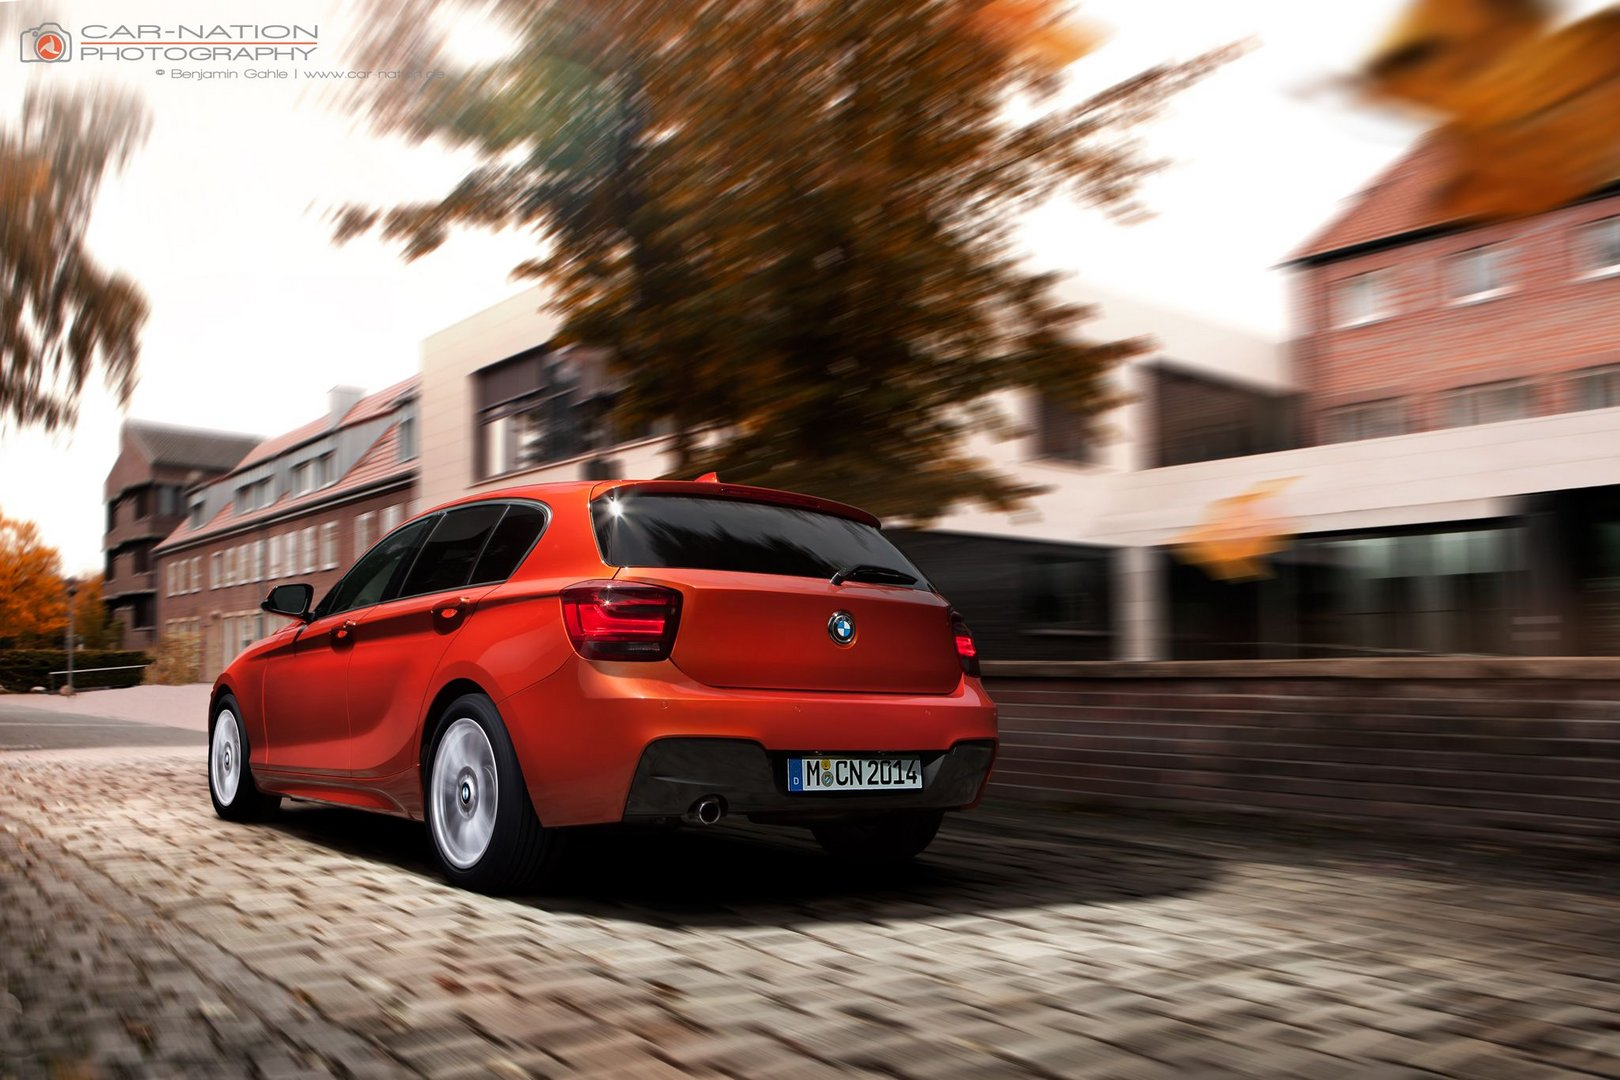 BMW 120d in motion